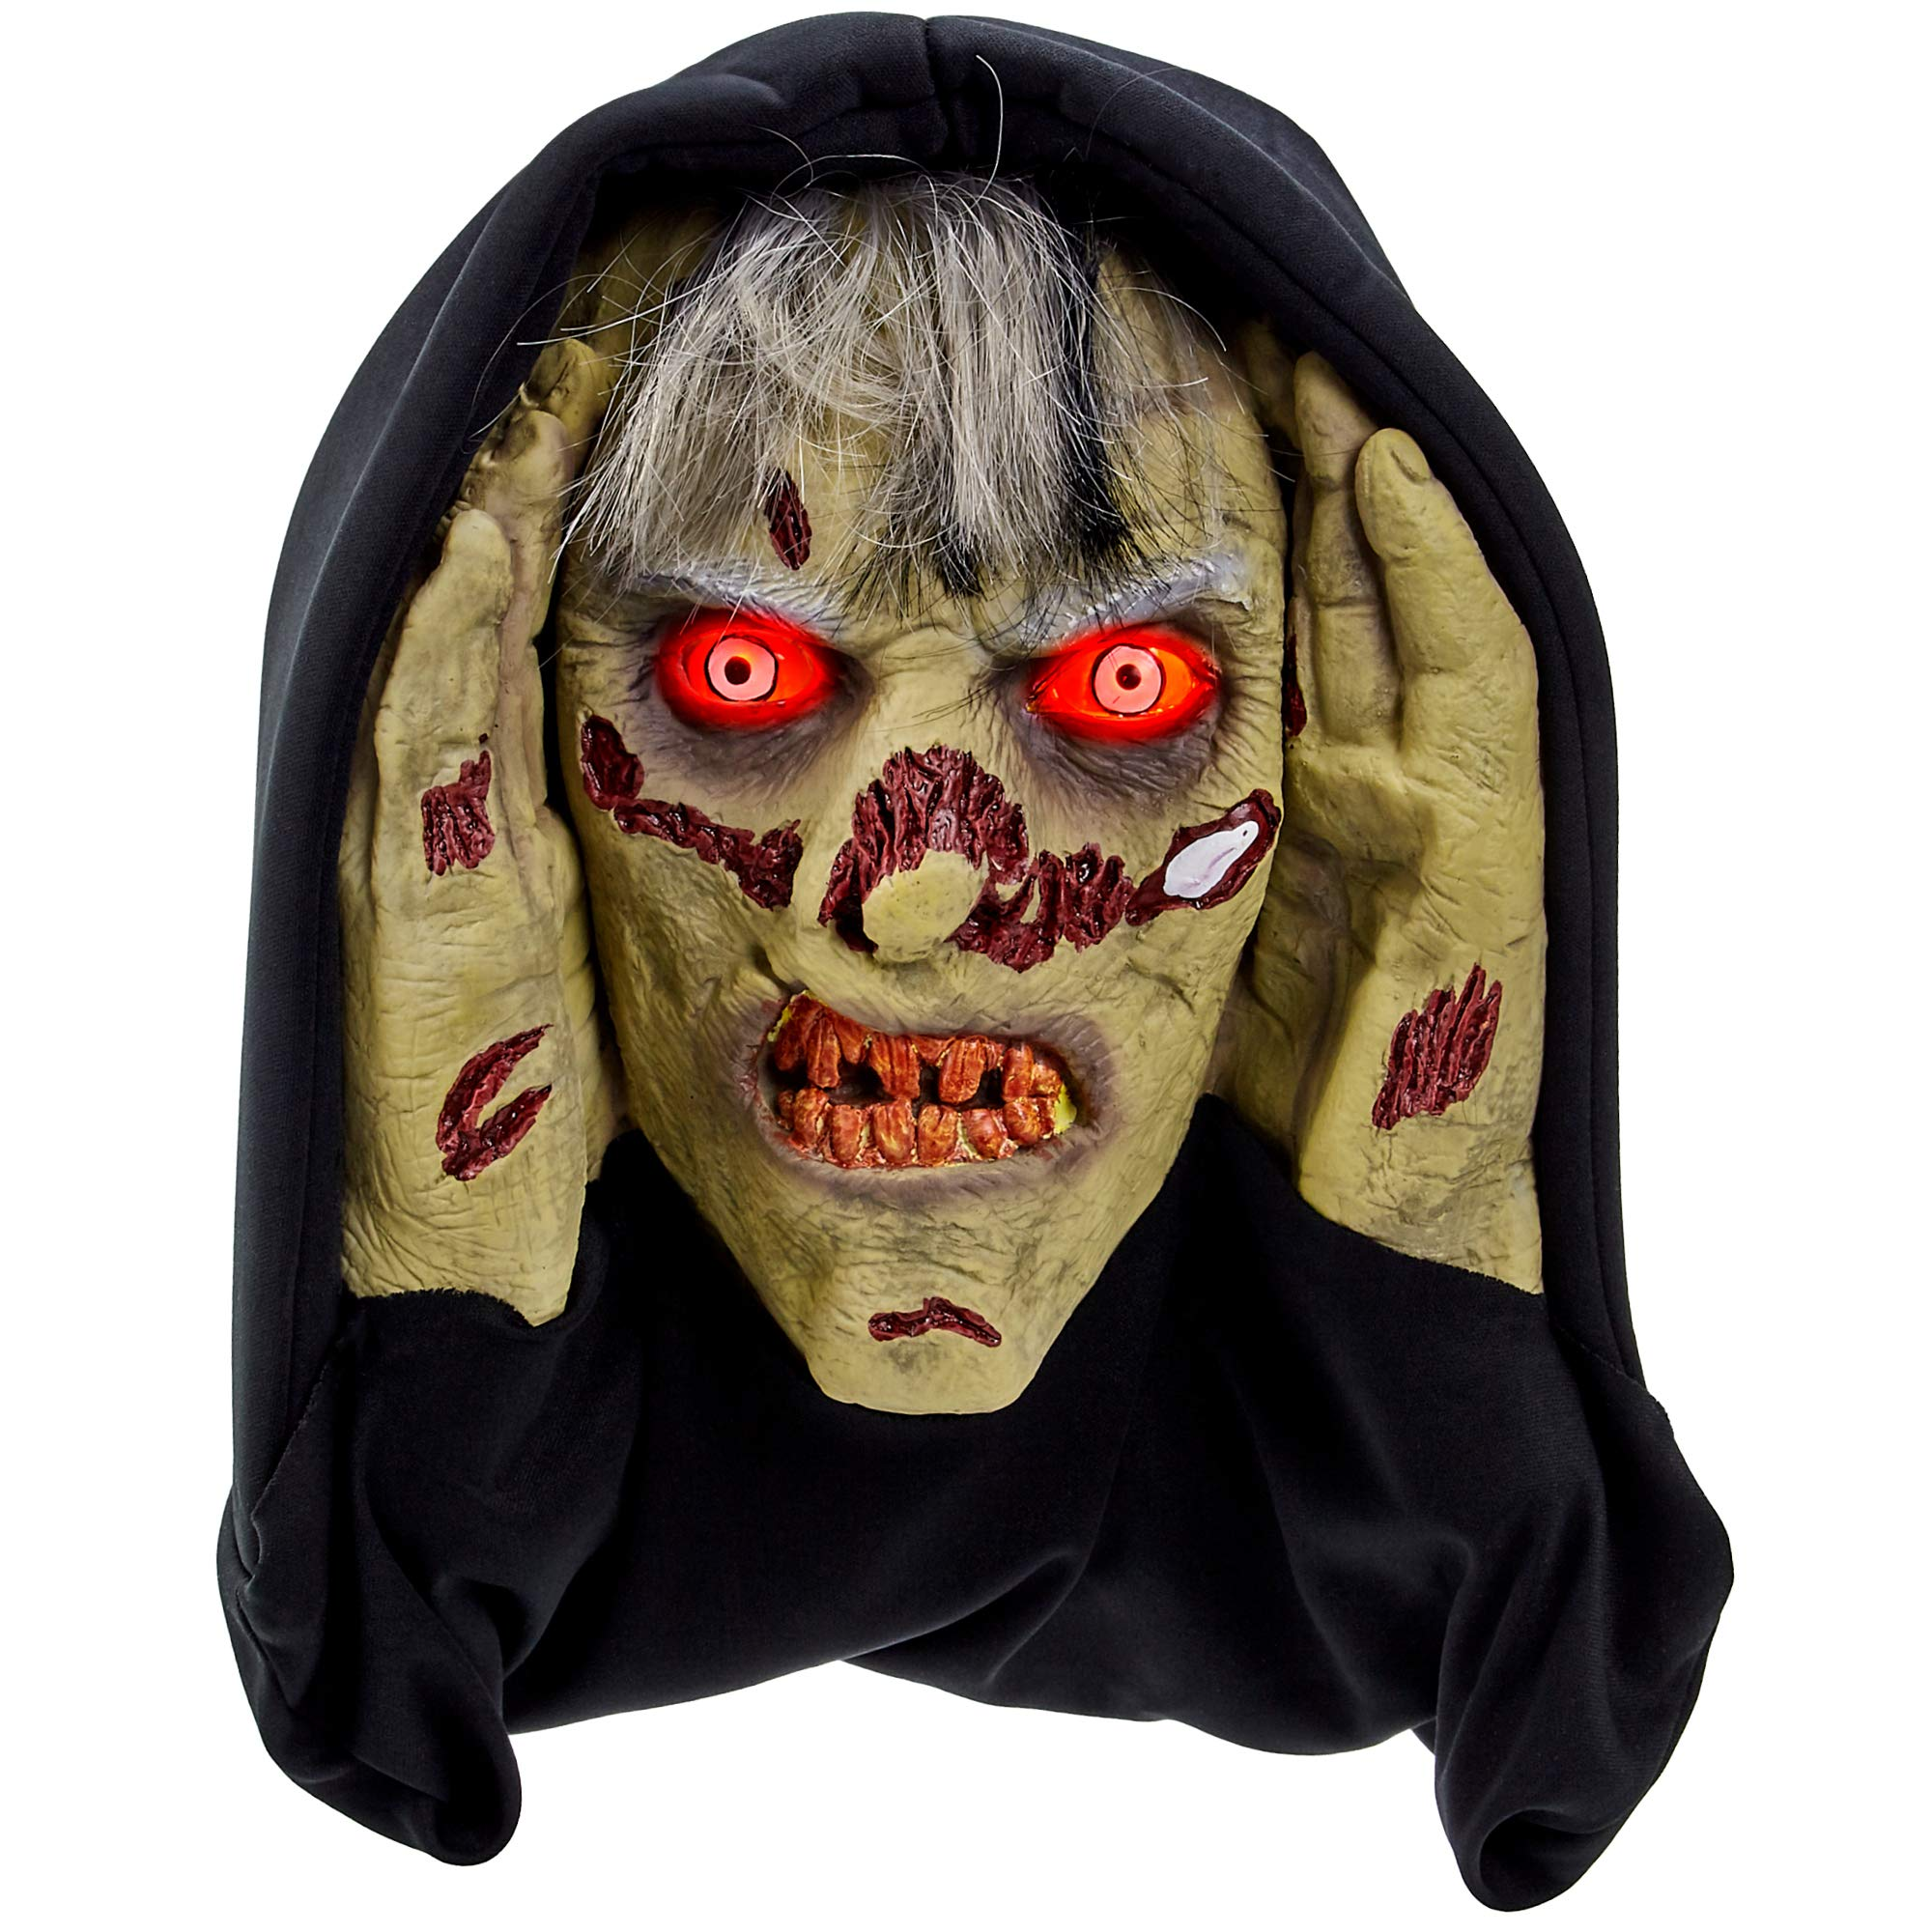 Scary Peeper - Halloween Animated Decoration Prank with Creepy Face, Glowing Red Led Eyes - Funny Motion Activated Gag Prop for Haunted House by Scary Peeper